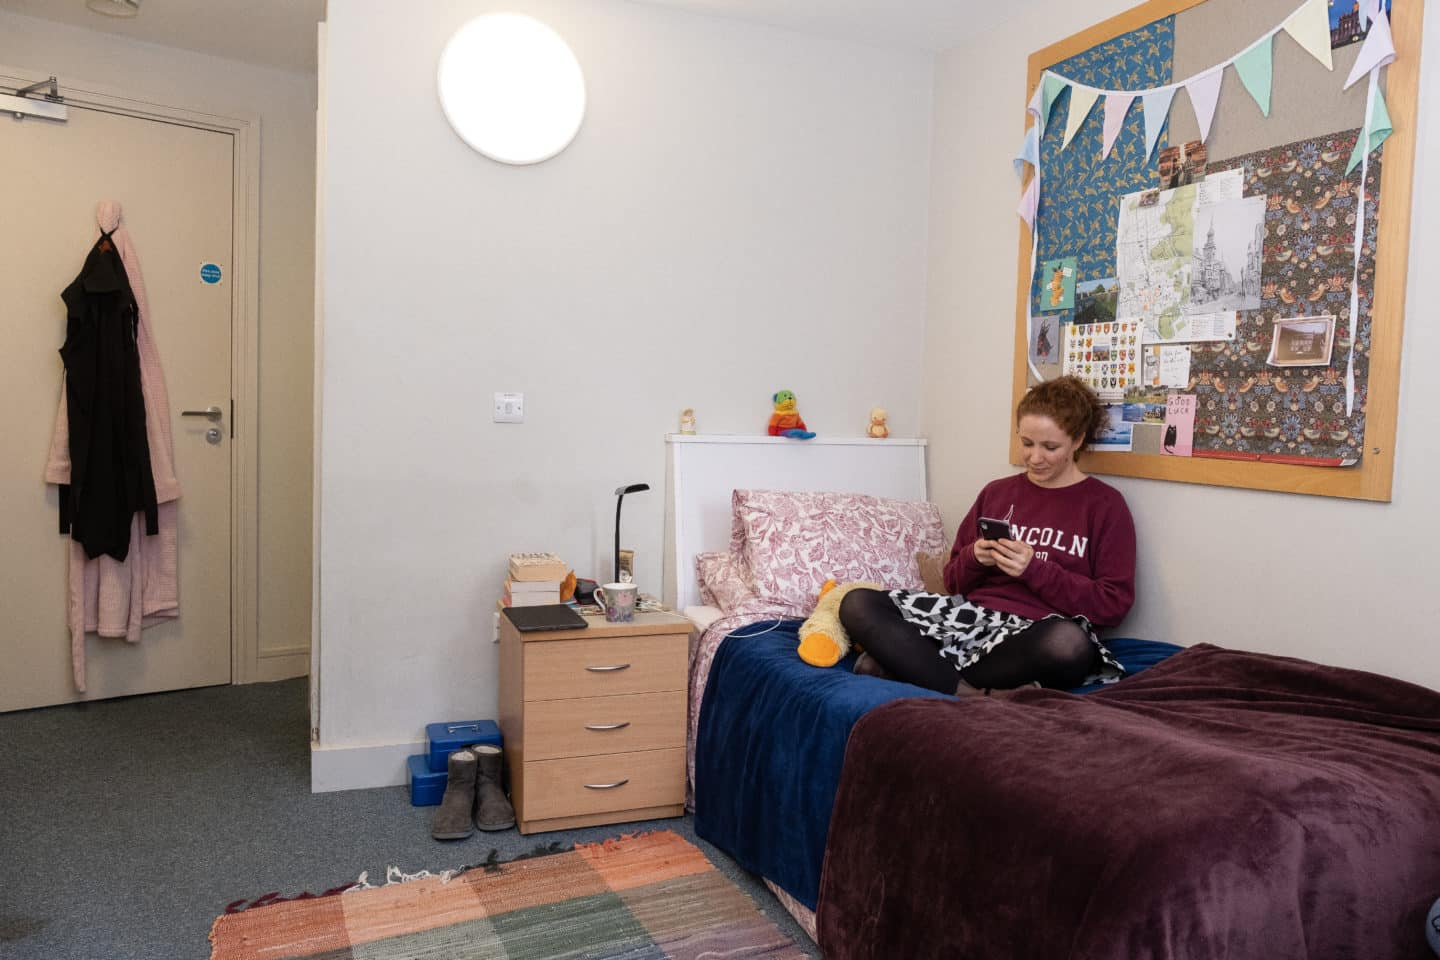 Graduate student bedroom in the EPA Centre